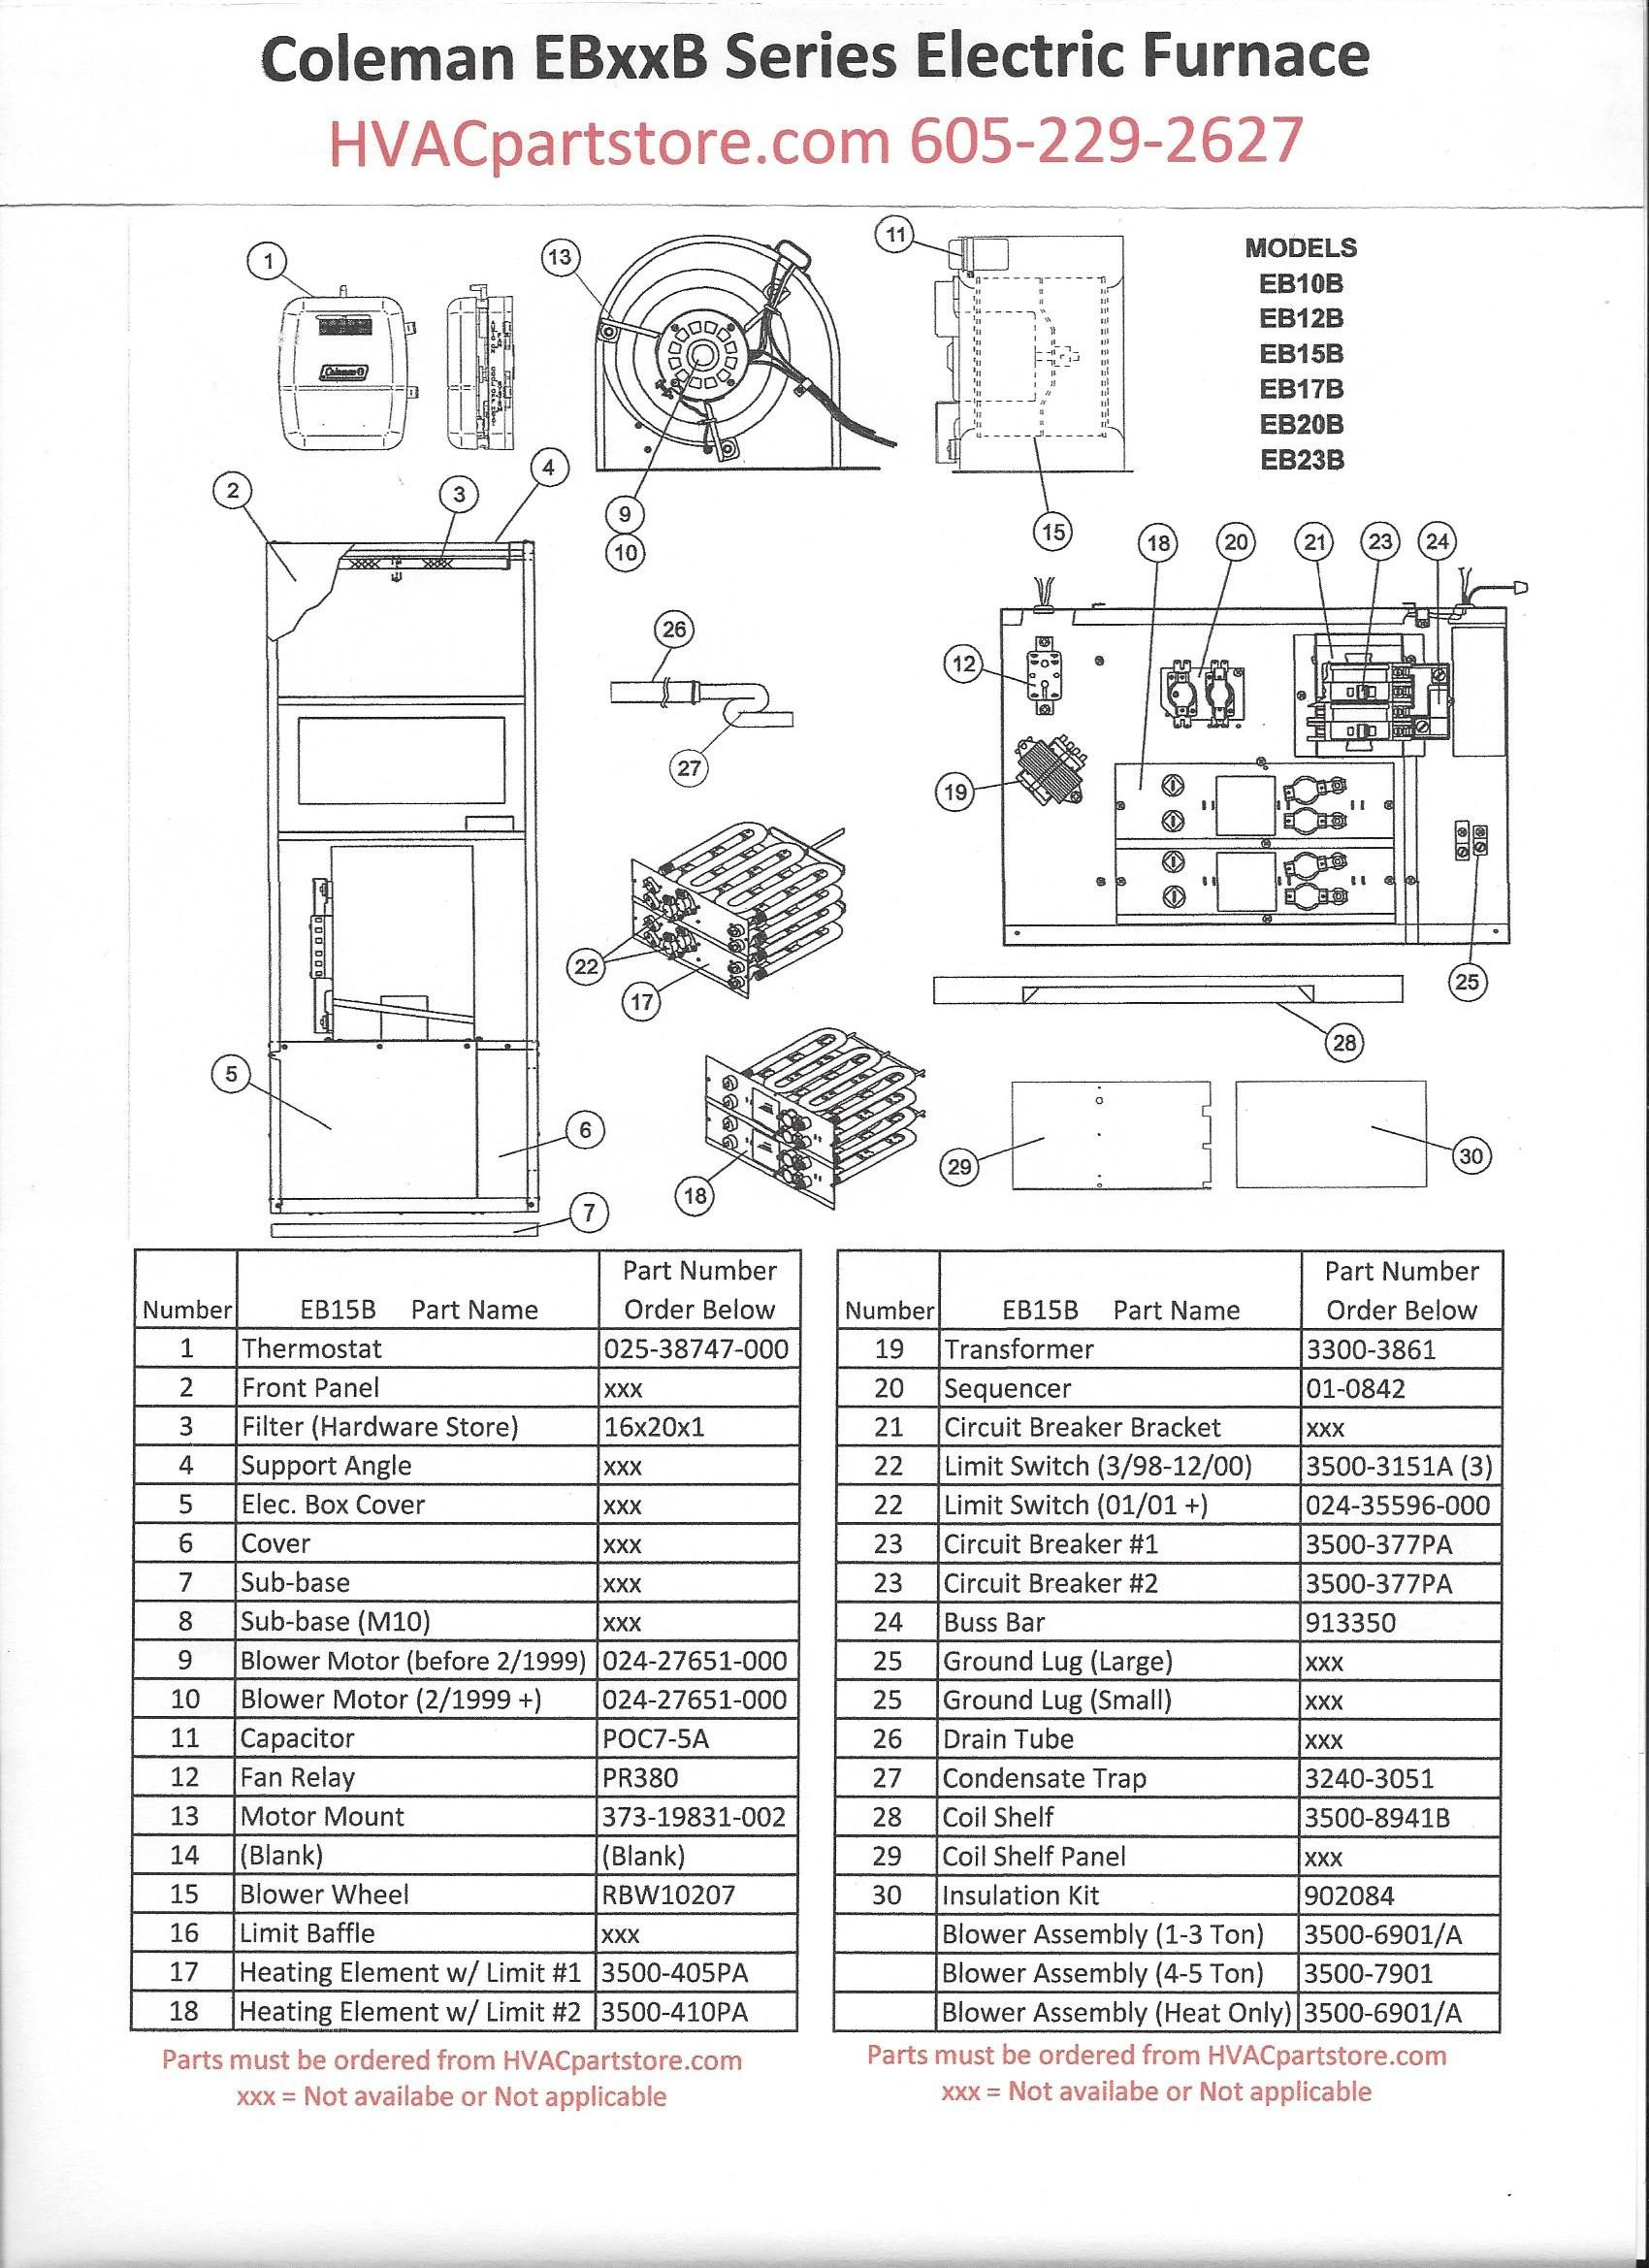 Payne Electric Furnace Sequencer Wiring Diagram | Wiring Diagram - Electric Furnace Wiring Diagram Sequencer